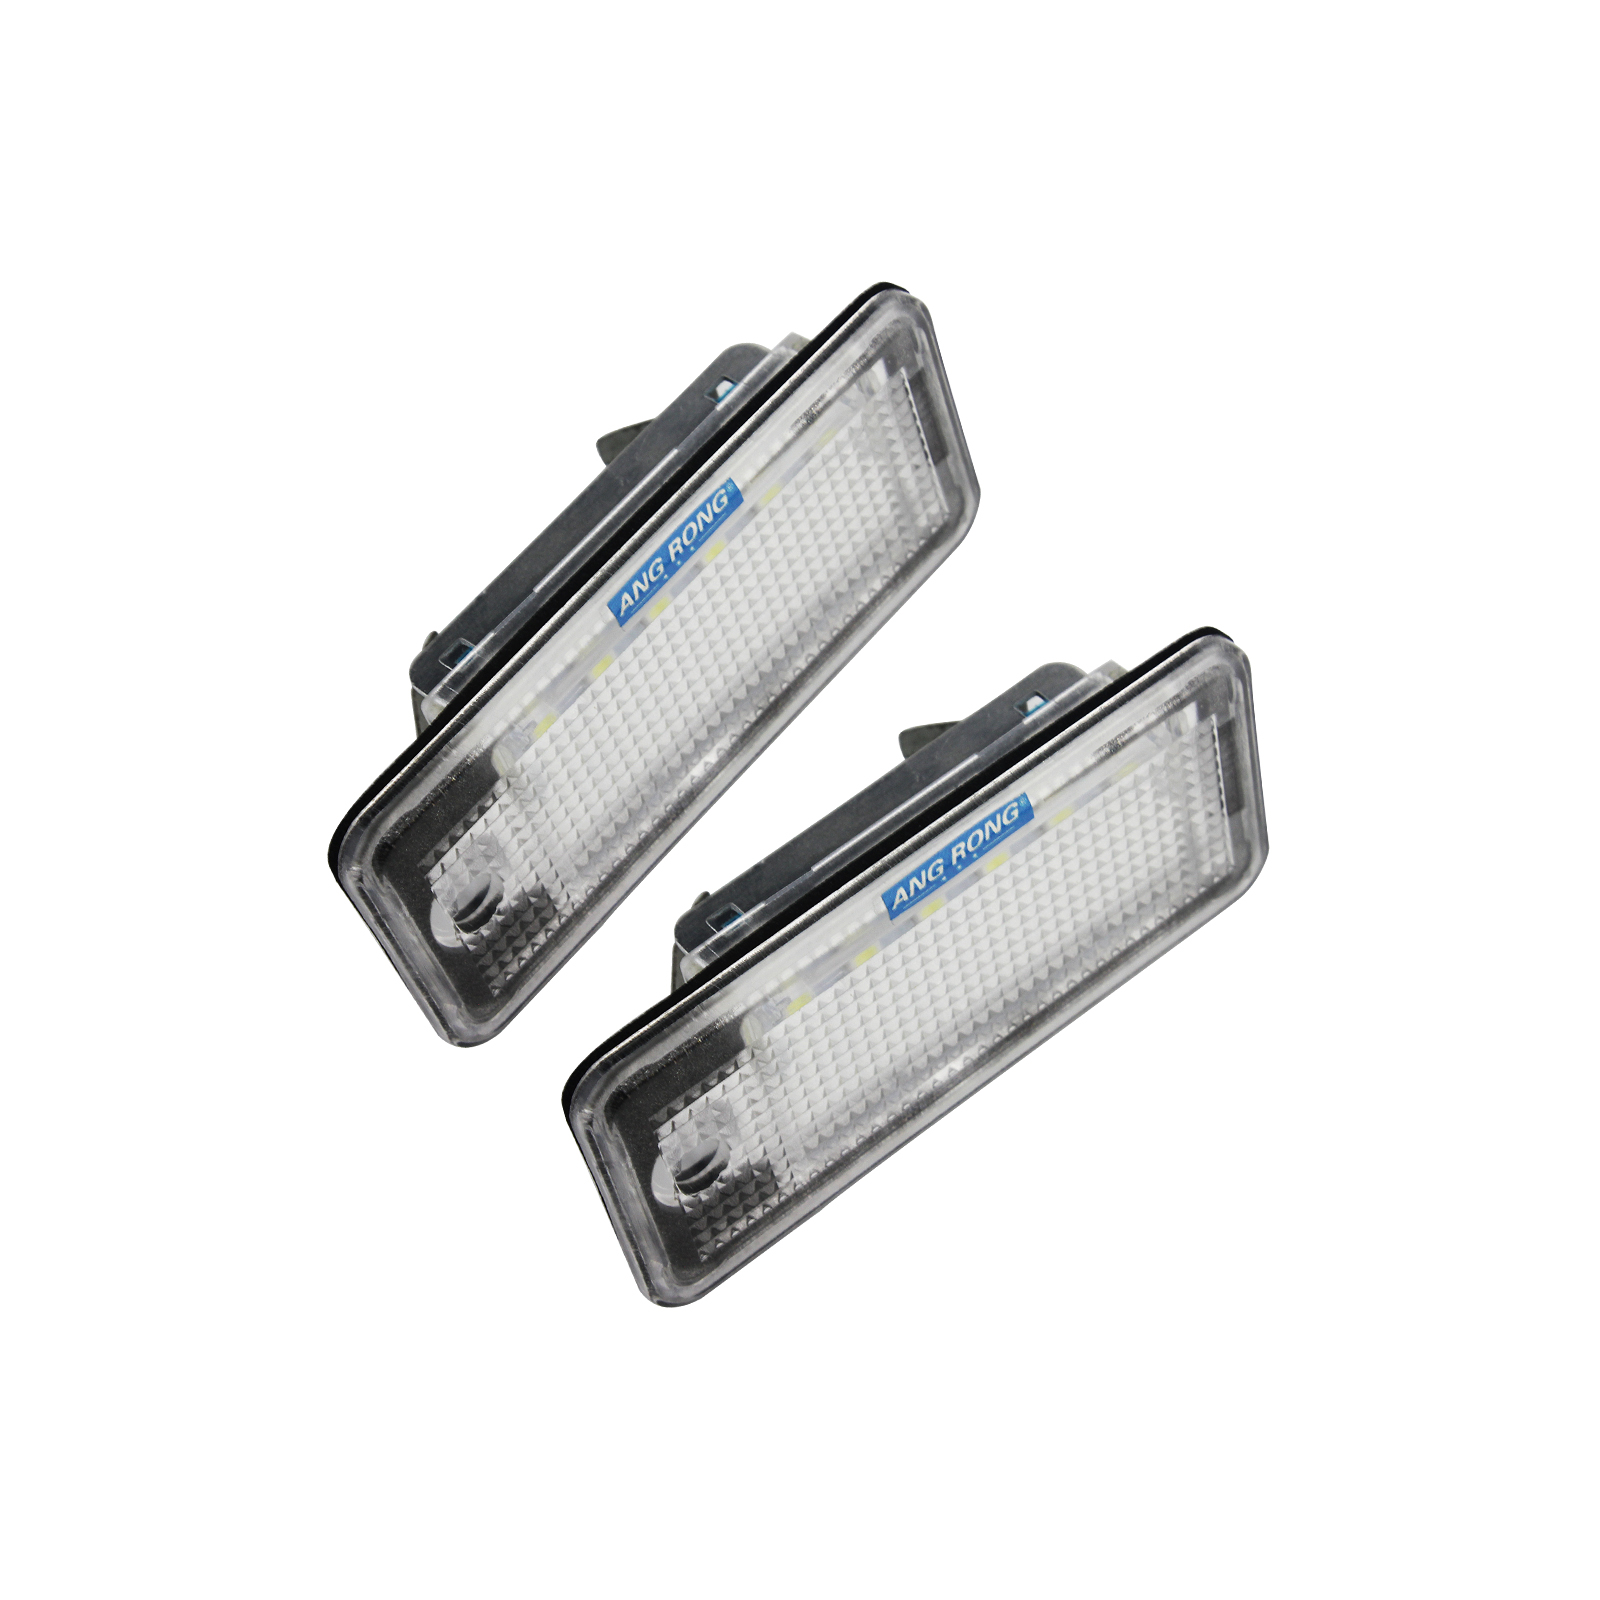 98-04 Land Rover Discovery Front Sidelights Park Lights Side Light Bulb Bulbs